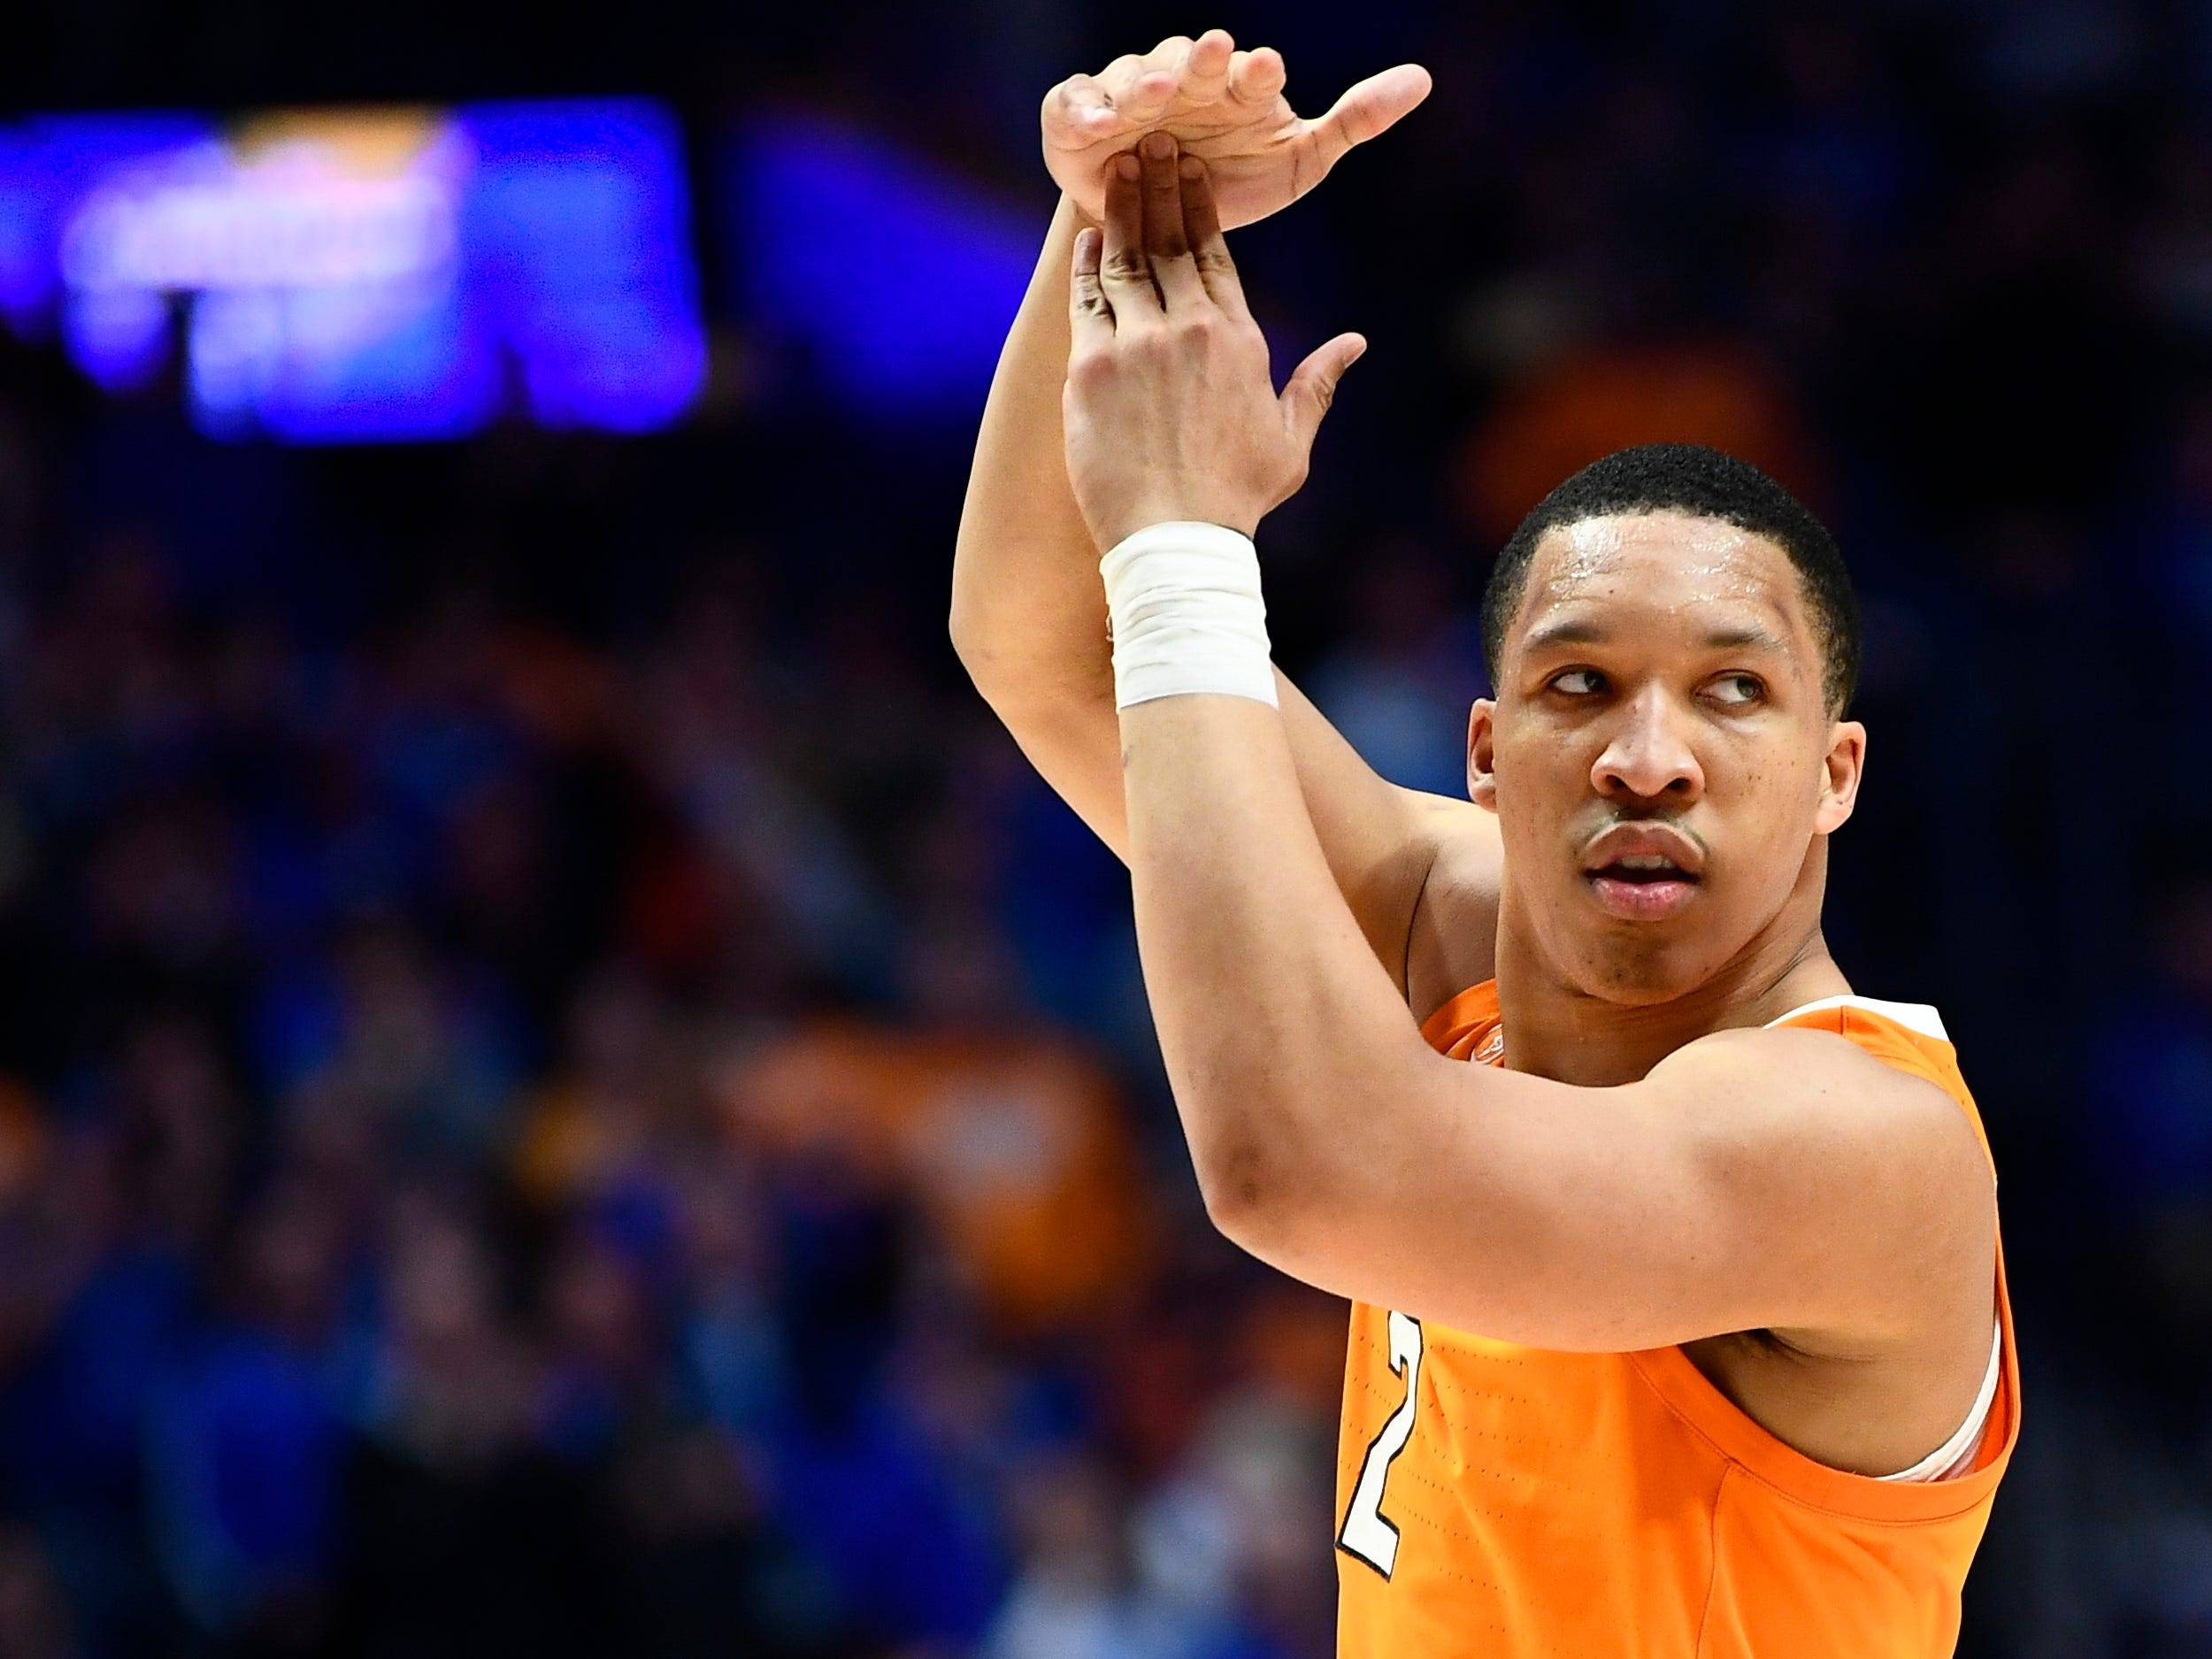 Tennessee forward Grant Williams (2) calls for a time-out during the second half of the SEC Men's Basketball Tournament semifinal game against Kentucky at Bridgestone Arena in Nashville, Tenn., Saturday, March 16, 2019.